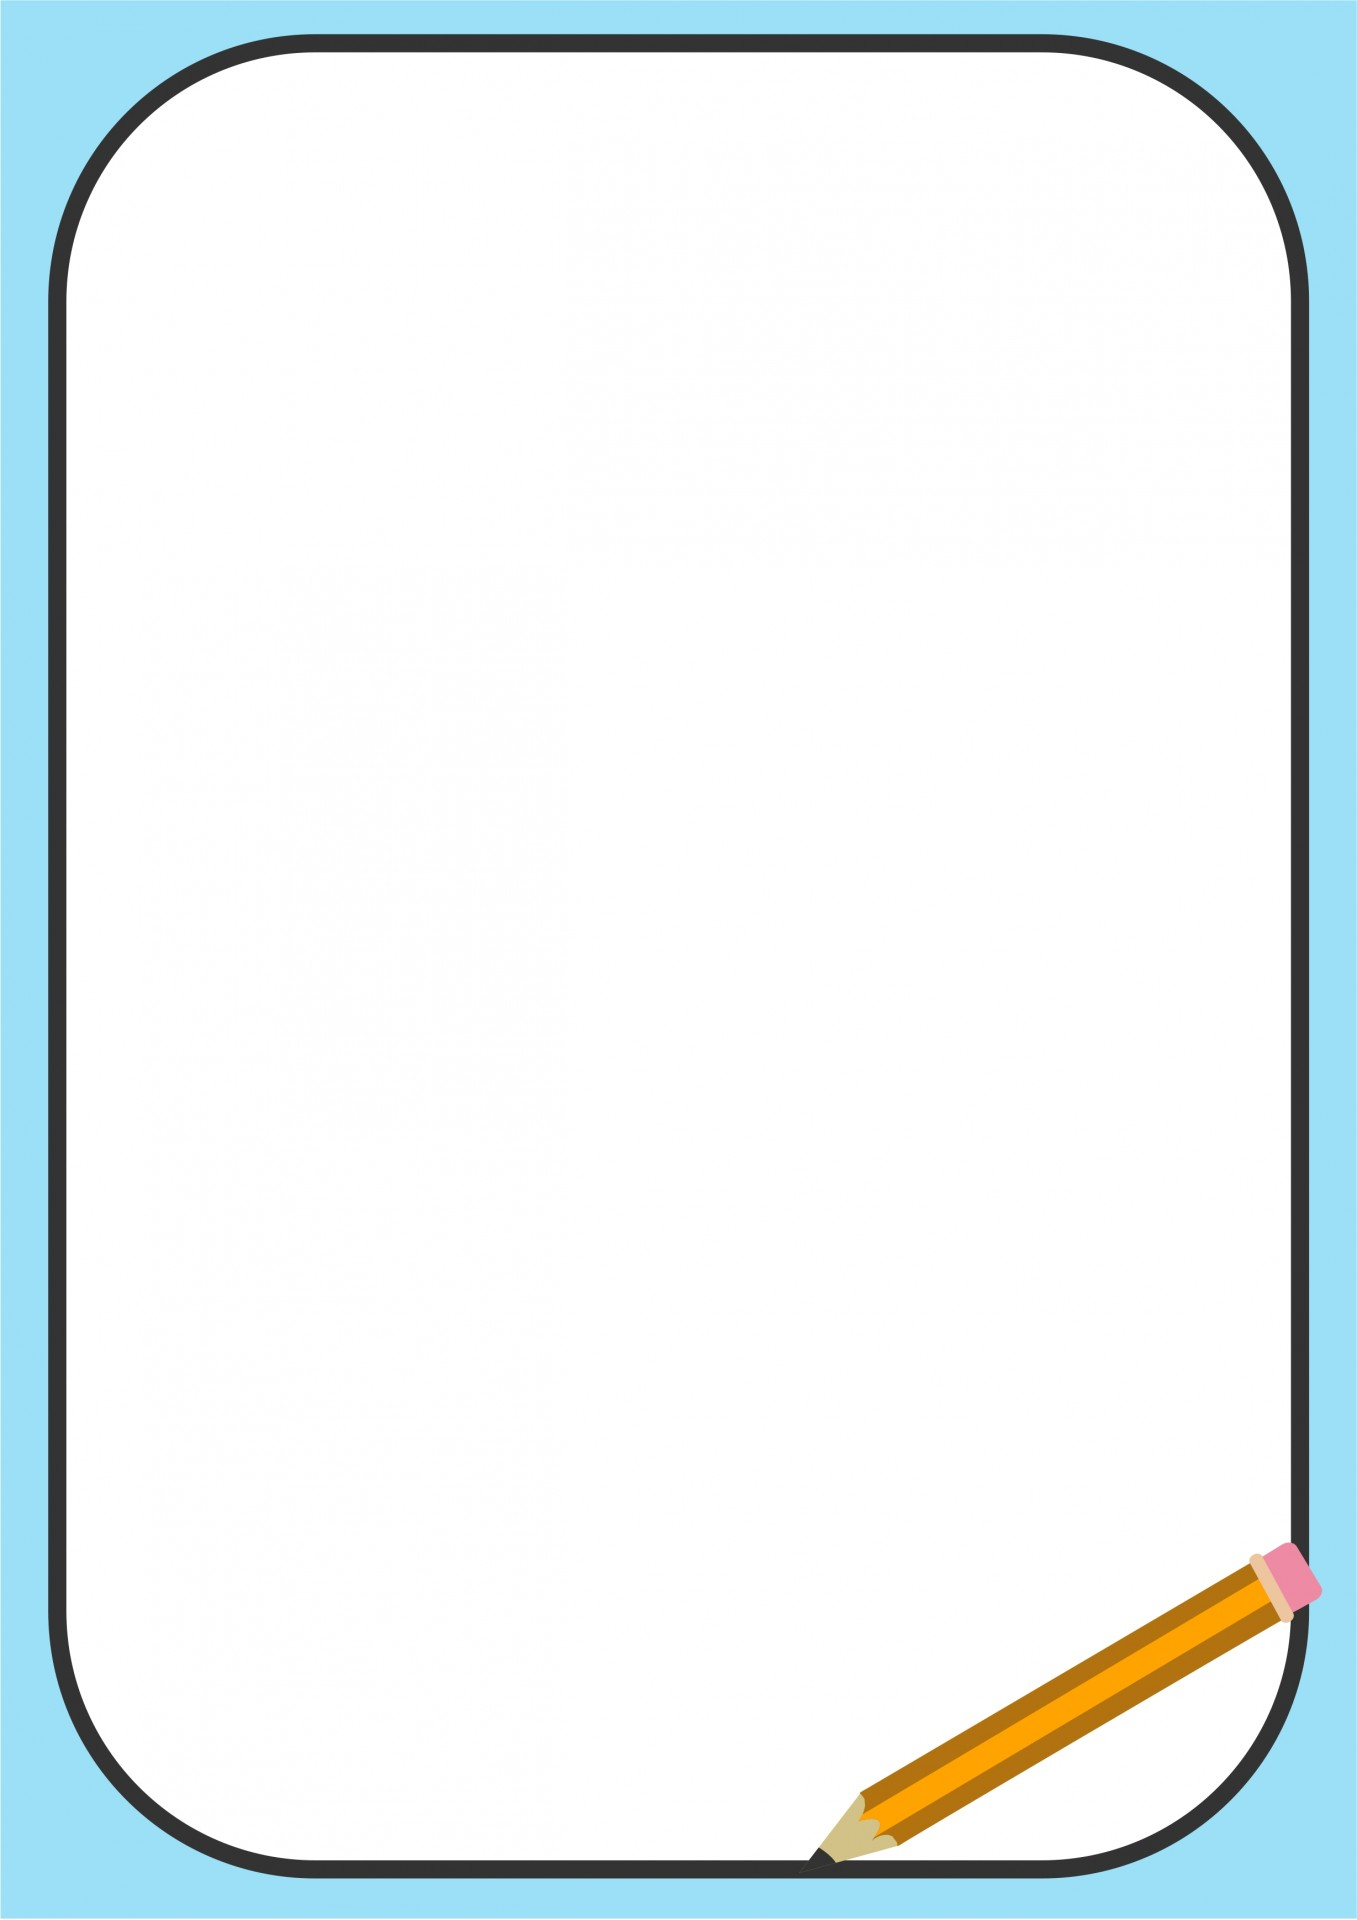 Pencil free stock photo. Border clipart picture library library